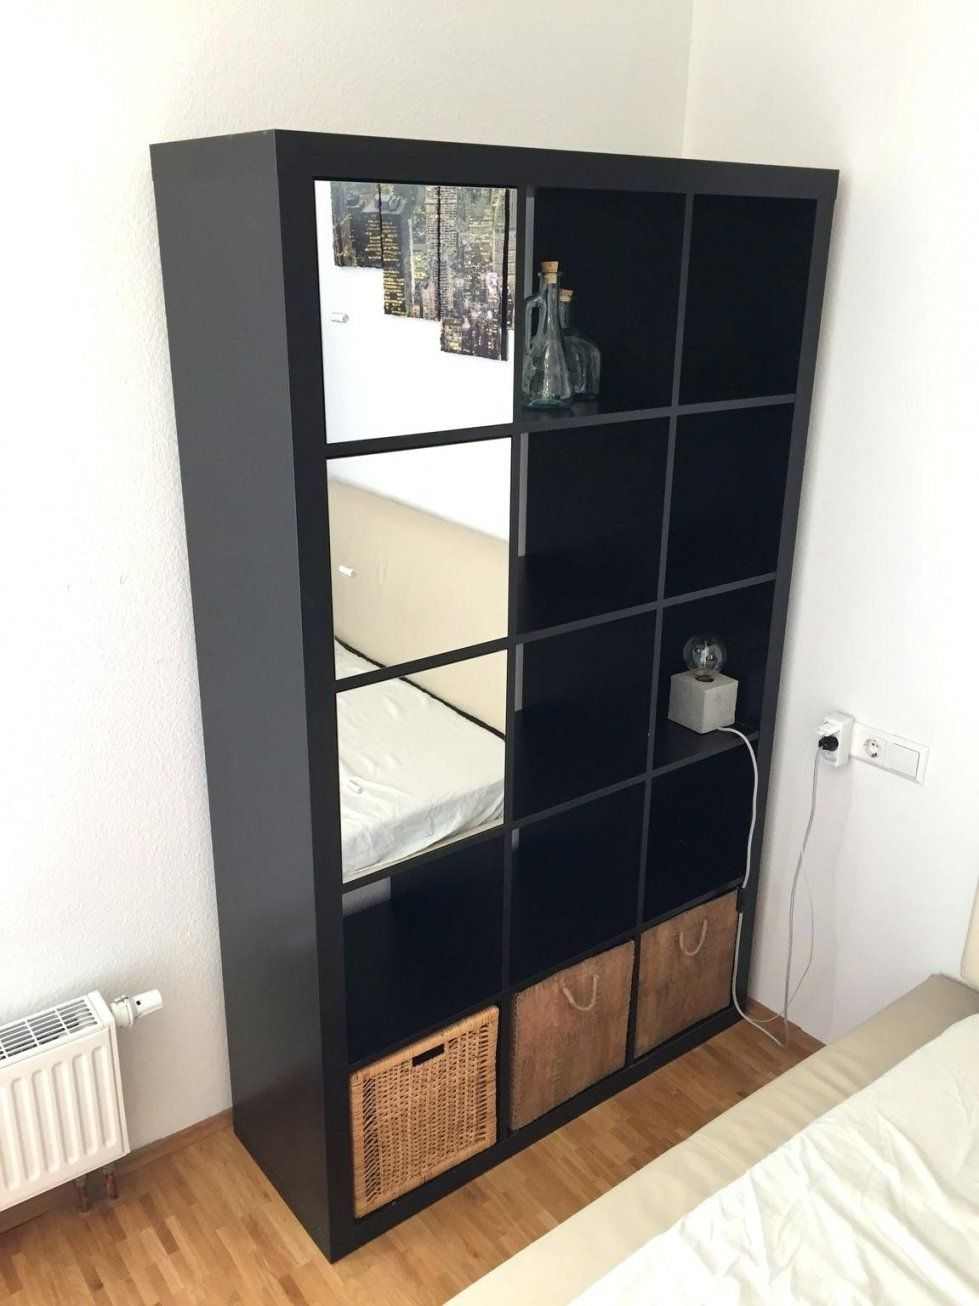 gebraucht ikea expedit kallax regal wei 8 f cher in 53757 sankt von ikea regal kallax gebraucht. Black Bedroom Furniture Sets. Home Design Ideas